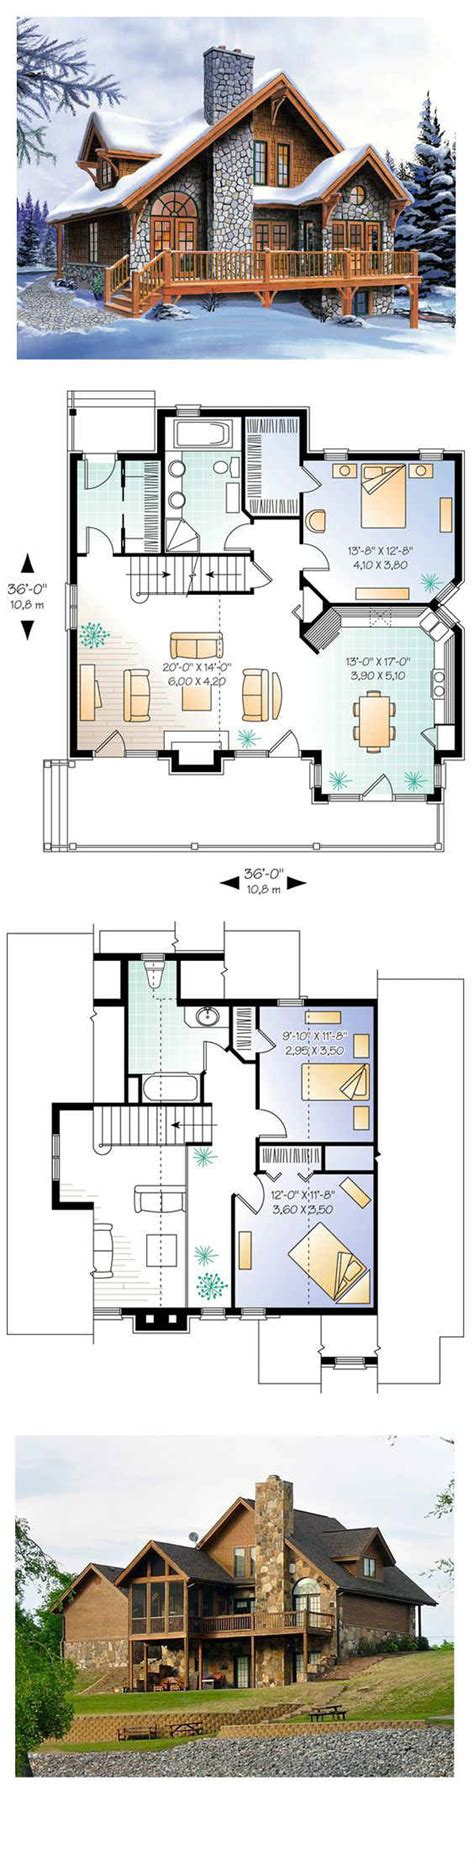 types of house design 2 different 3d home elevations architecture house plans 4 different style india house